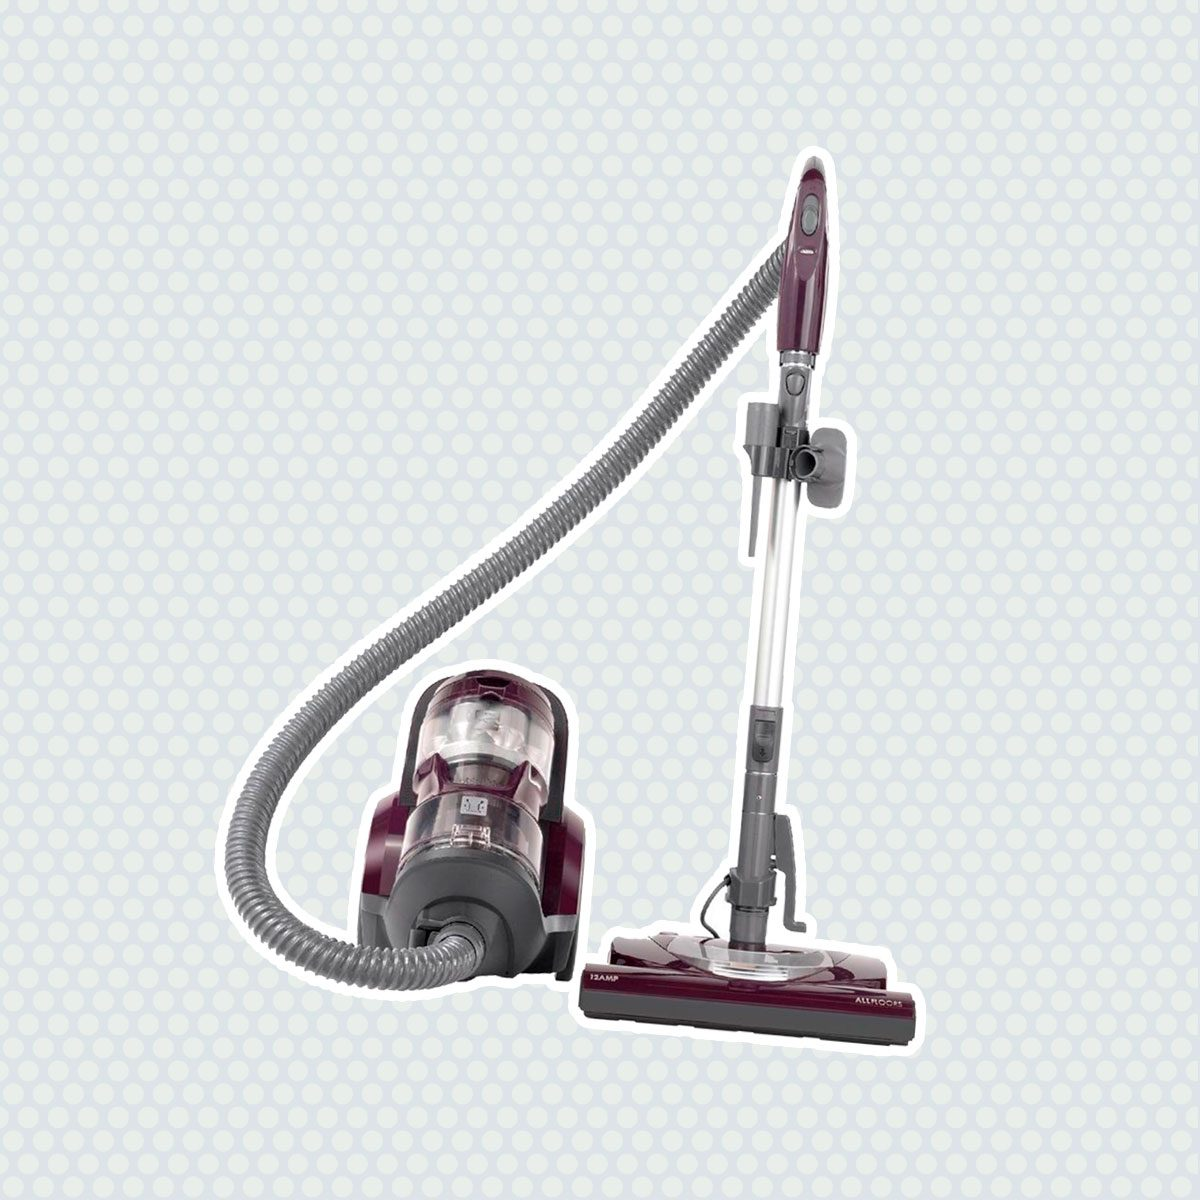 Kenmore 22614 Pet Friendly Lightweight Bagless Compact Canister Vacuum with Pet Powermate, HEPA, Extended Telescoping Wand, Retractable Cord and 2 Cleaning Tools-Purple